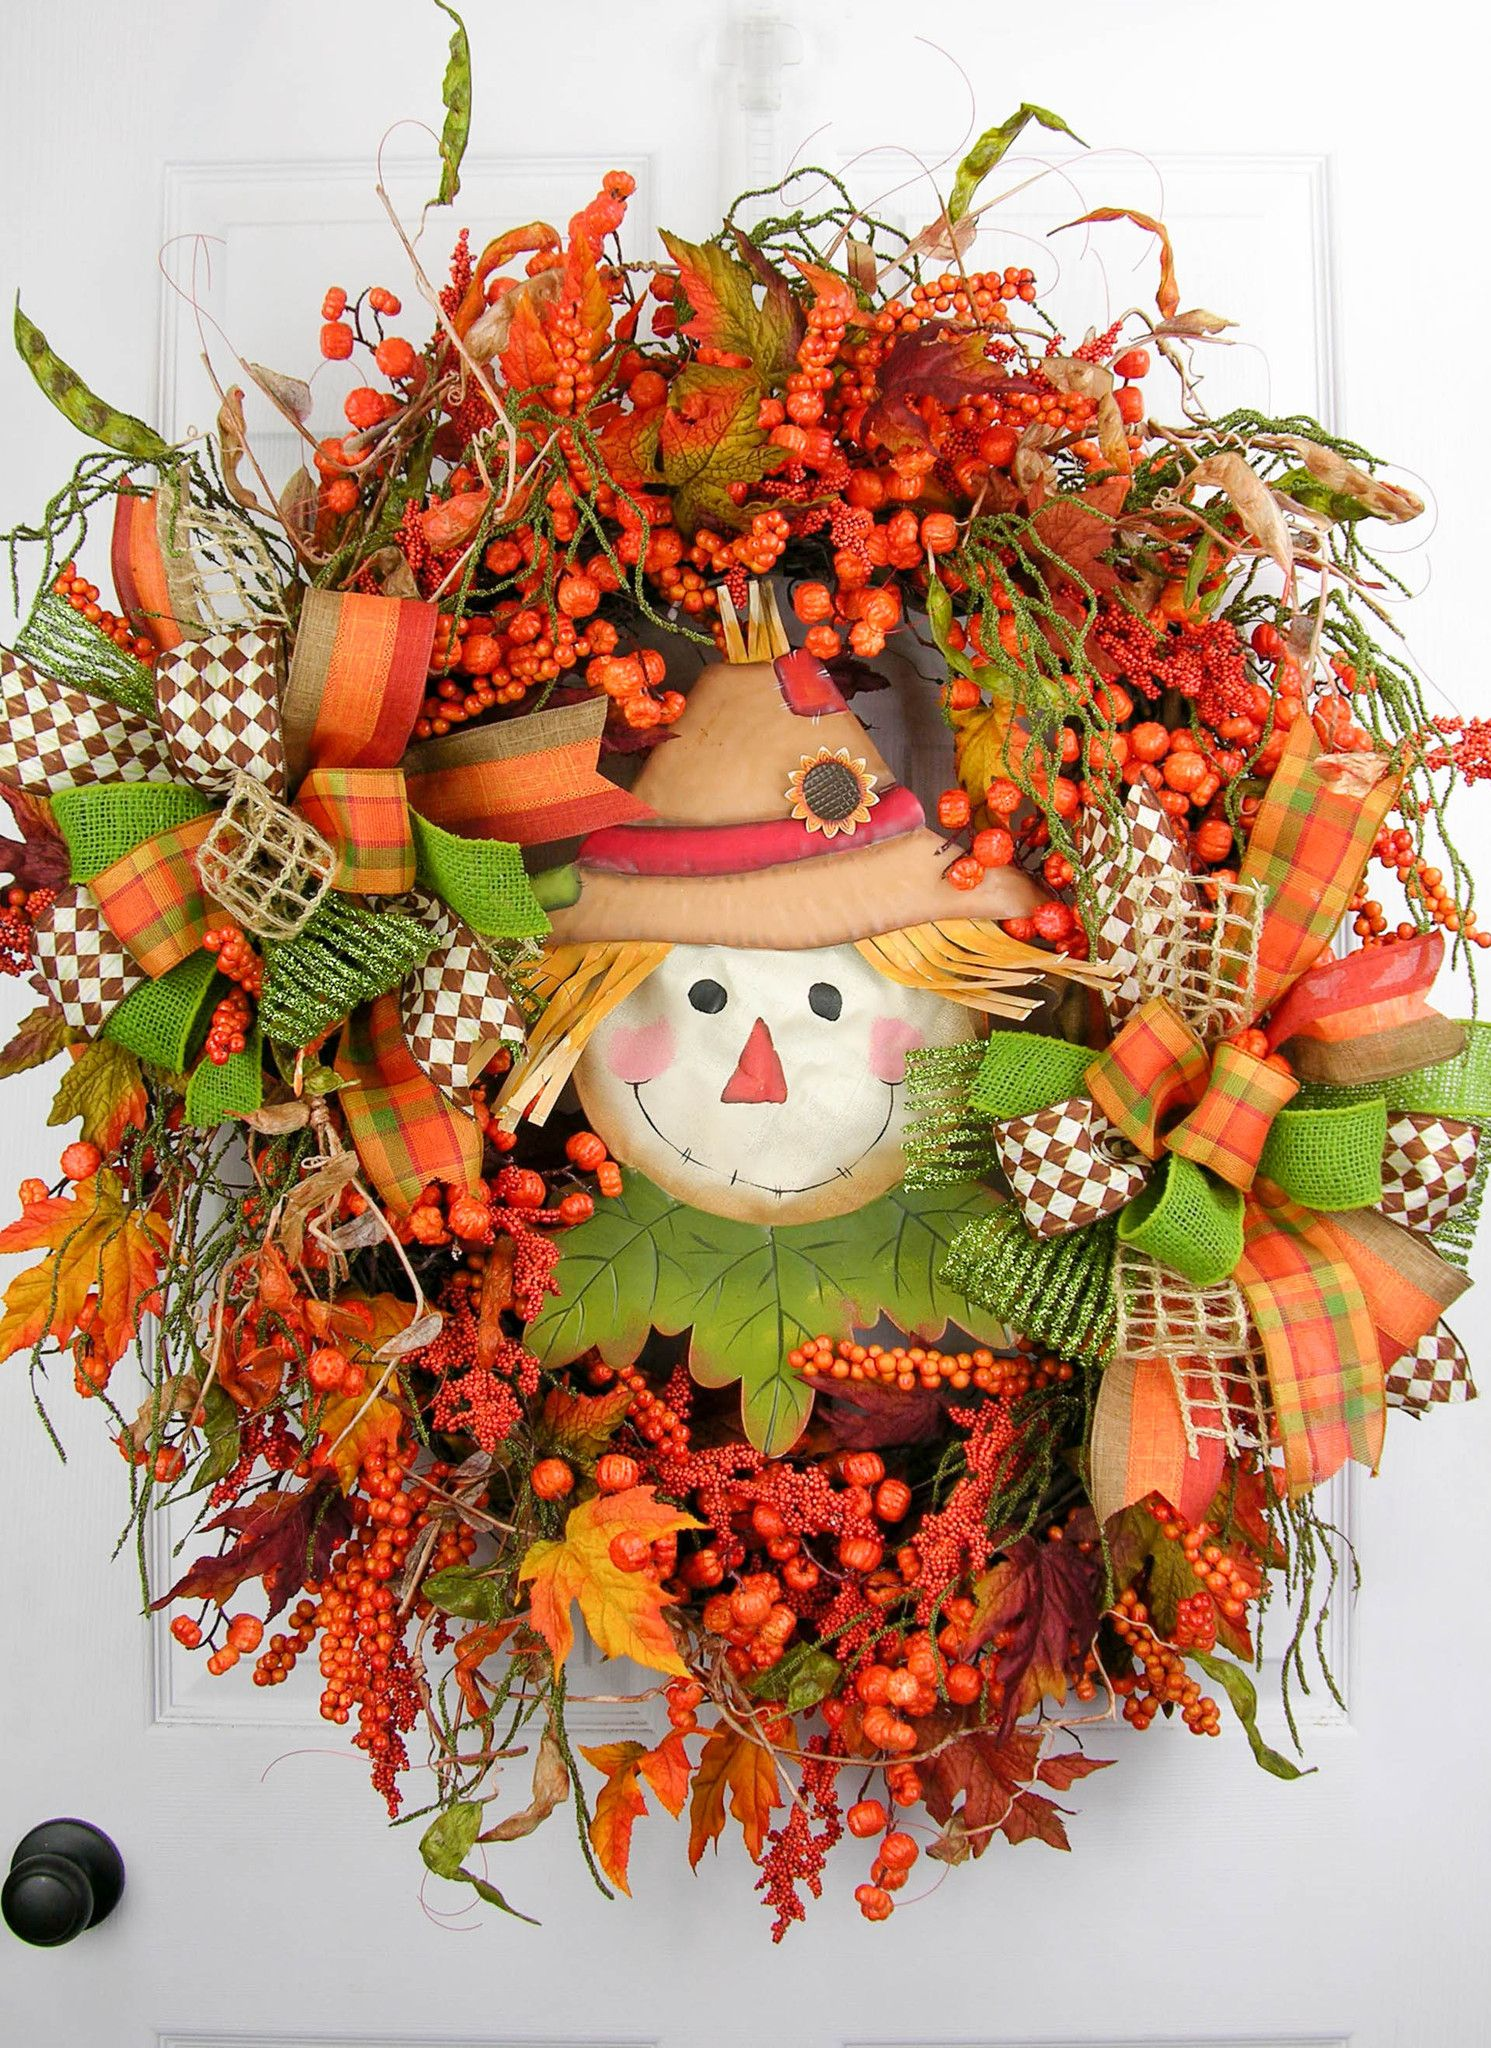 From Our Designer Series And Full Of Pumpkin Stems And Berries With Twisting Vines Fall Leaves And Dried B Fall Thanksgiving Wreaths Fall Wreaths Fall Wreath